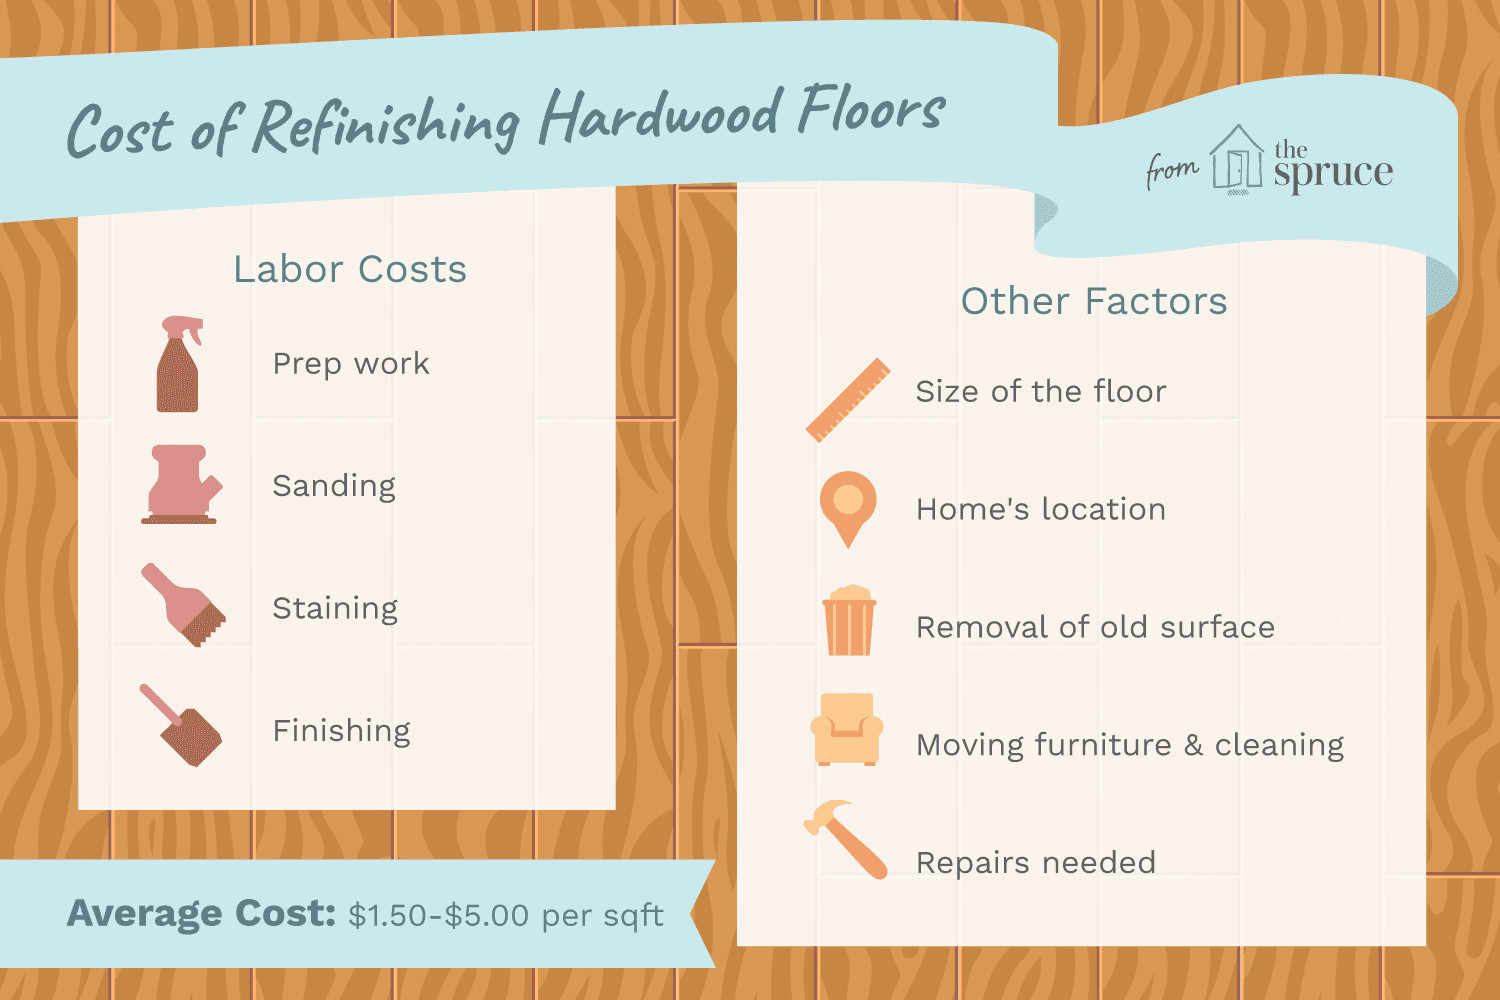 hardwood floor refinishing eugene of the cost to refinish hardwood floors with cost to refinish hardwood floors 1314853 final 5bb6259346e0fb0026825ce2